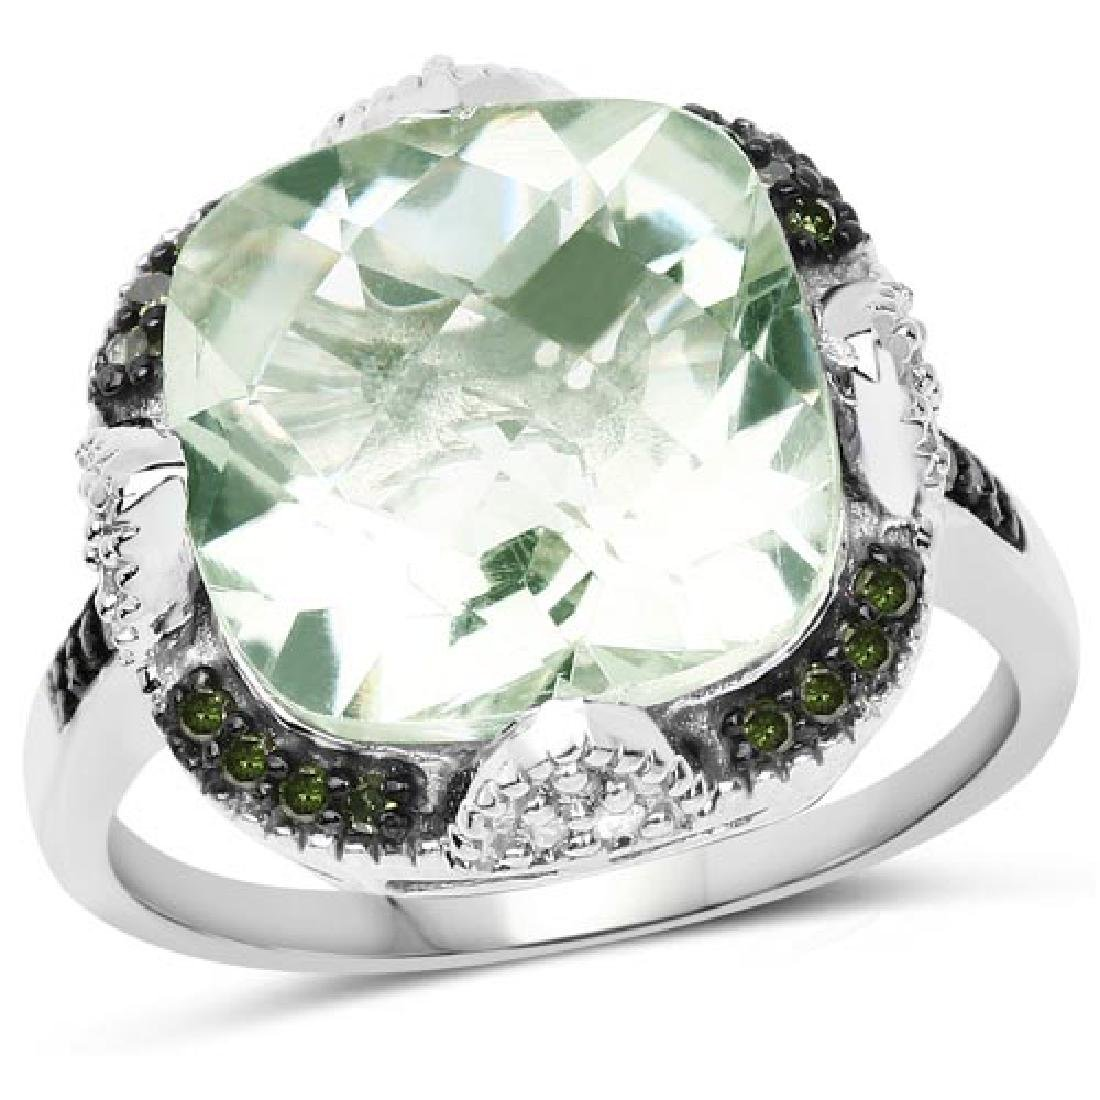 6.07 Carat Genuine Green Amethyst Green Diamond and Wh